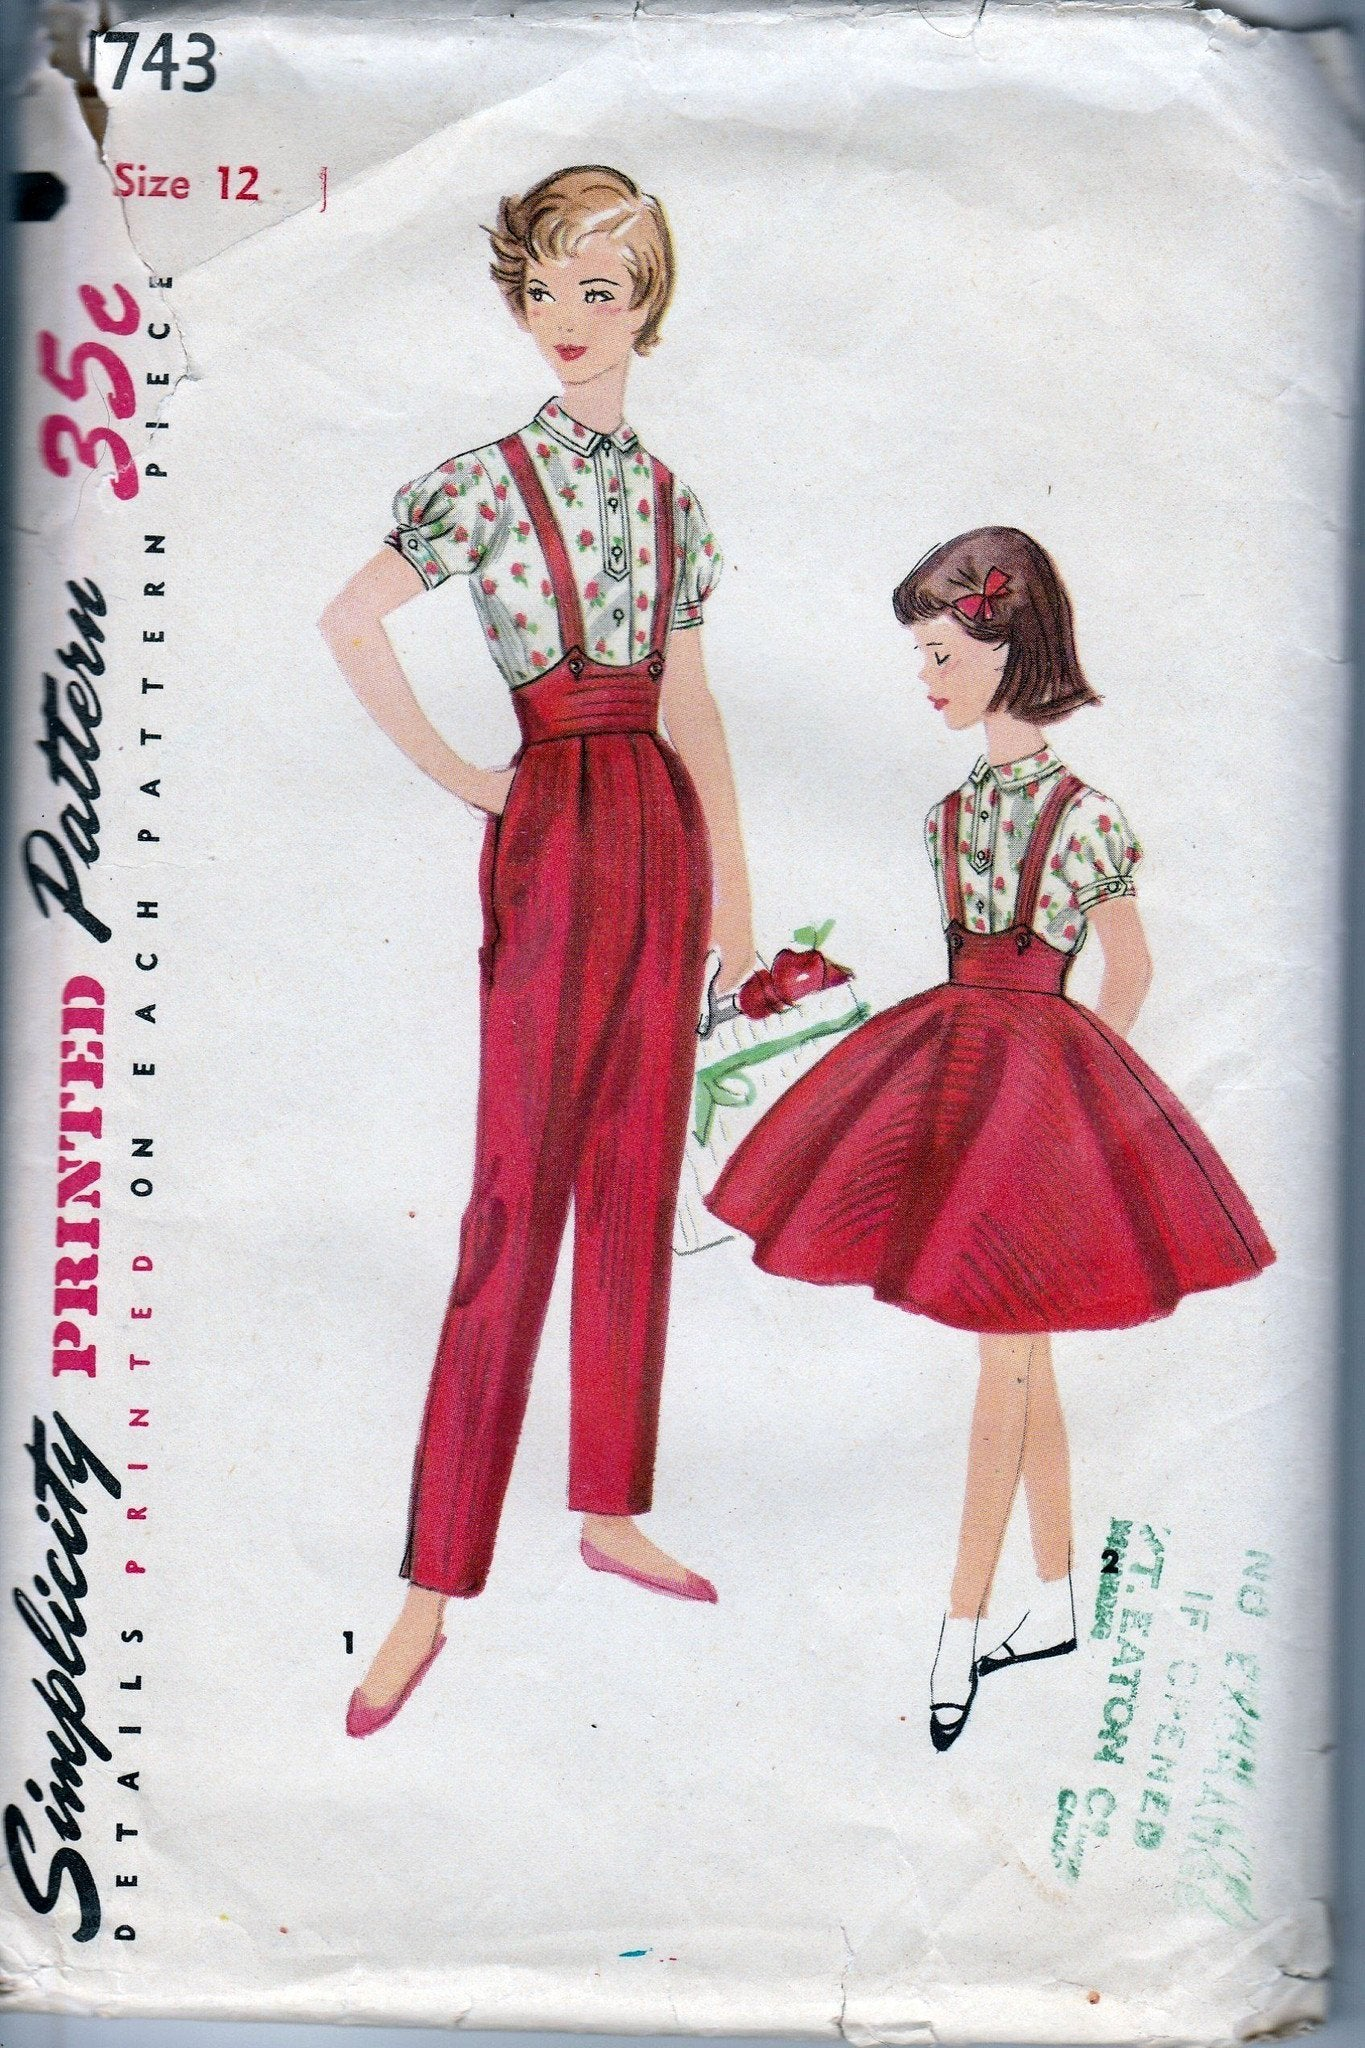 Simplicity 1743 Girls Blouse Suspender Skirt Pants Vintage Pattern 1950's - VintageStitching - Vintage Sewing Patterns